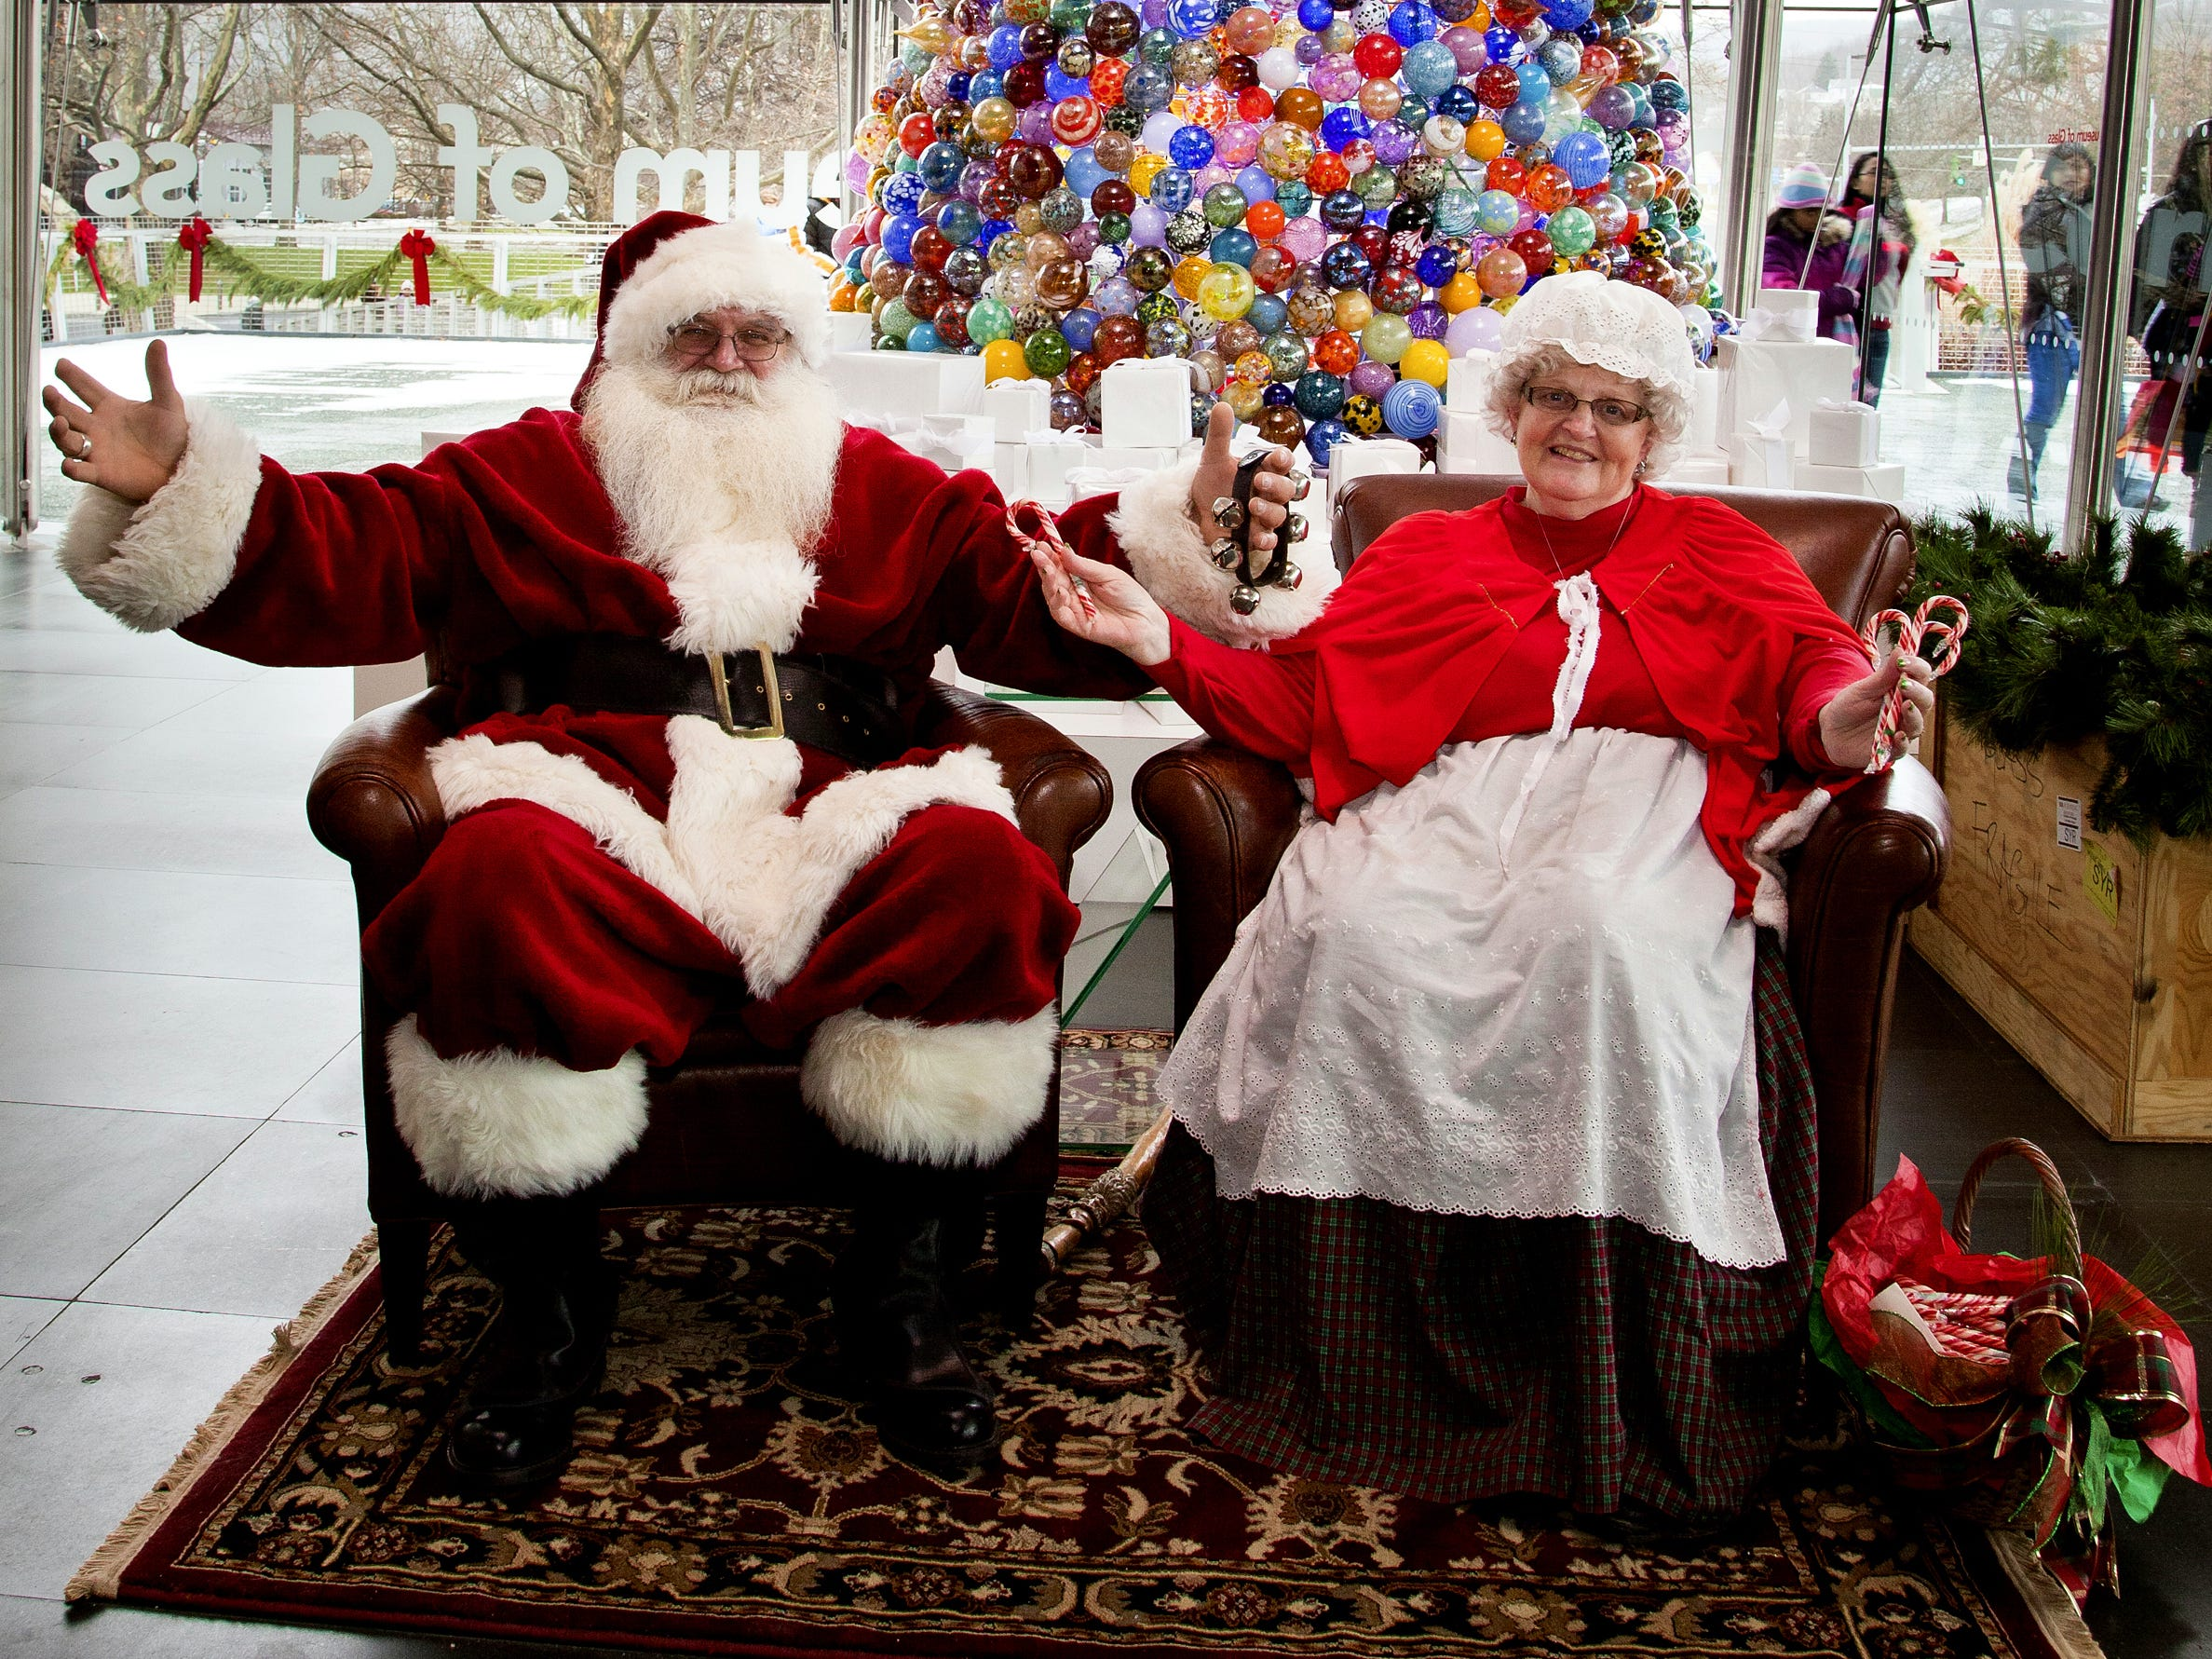 Santa and Mrs. Claus sit in front of the holiday ornament Christmas tree at the Corning Museum of Glass in 2015.